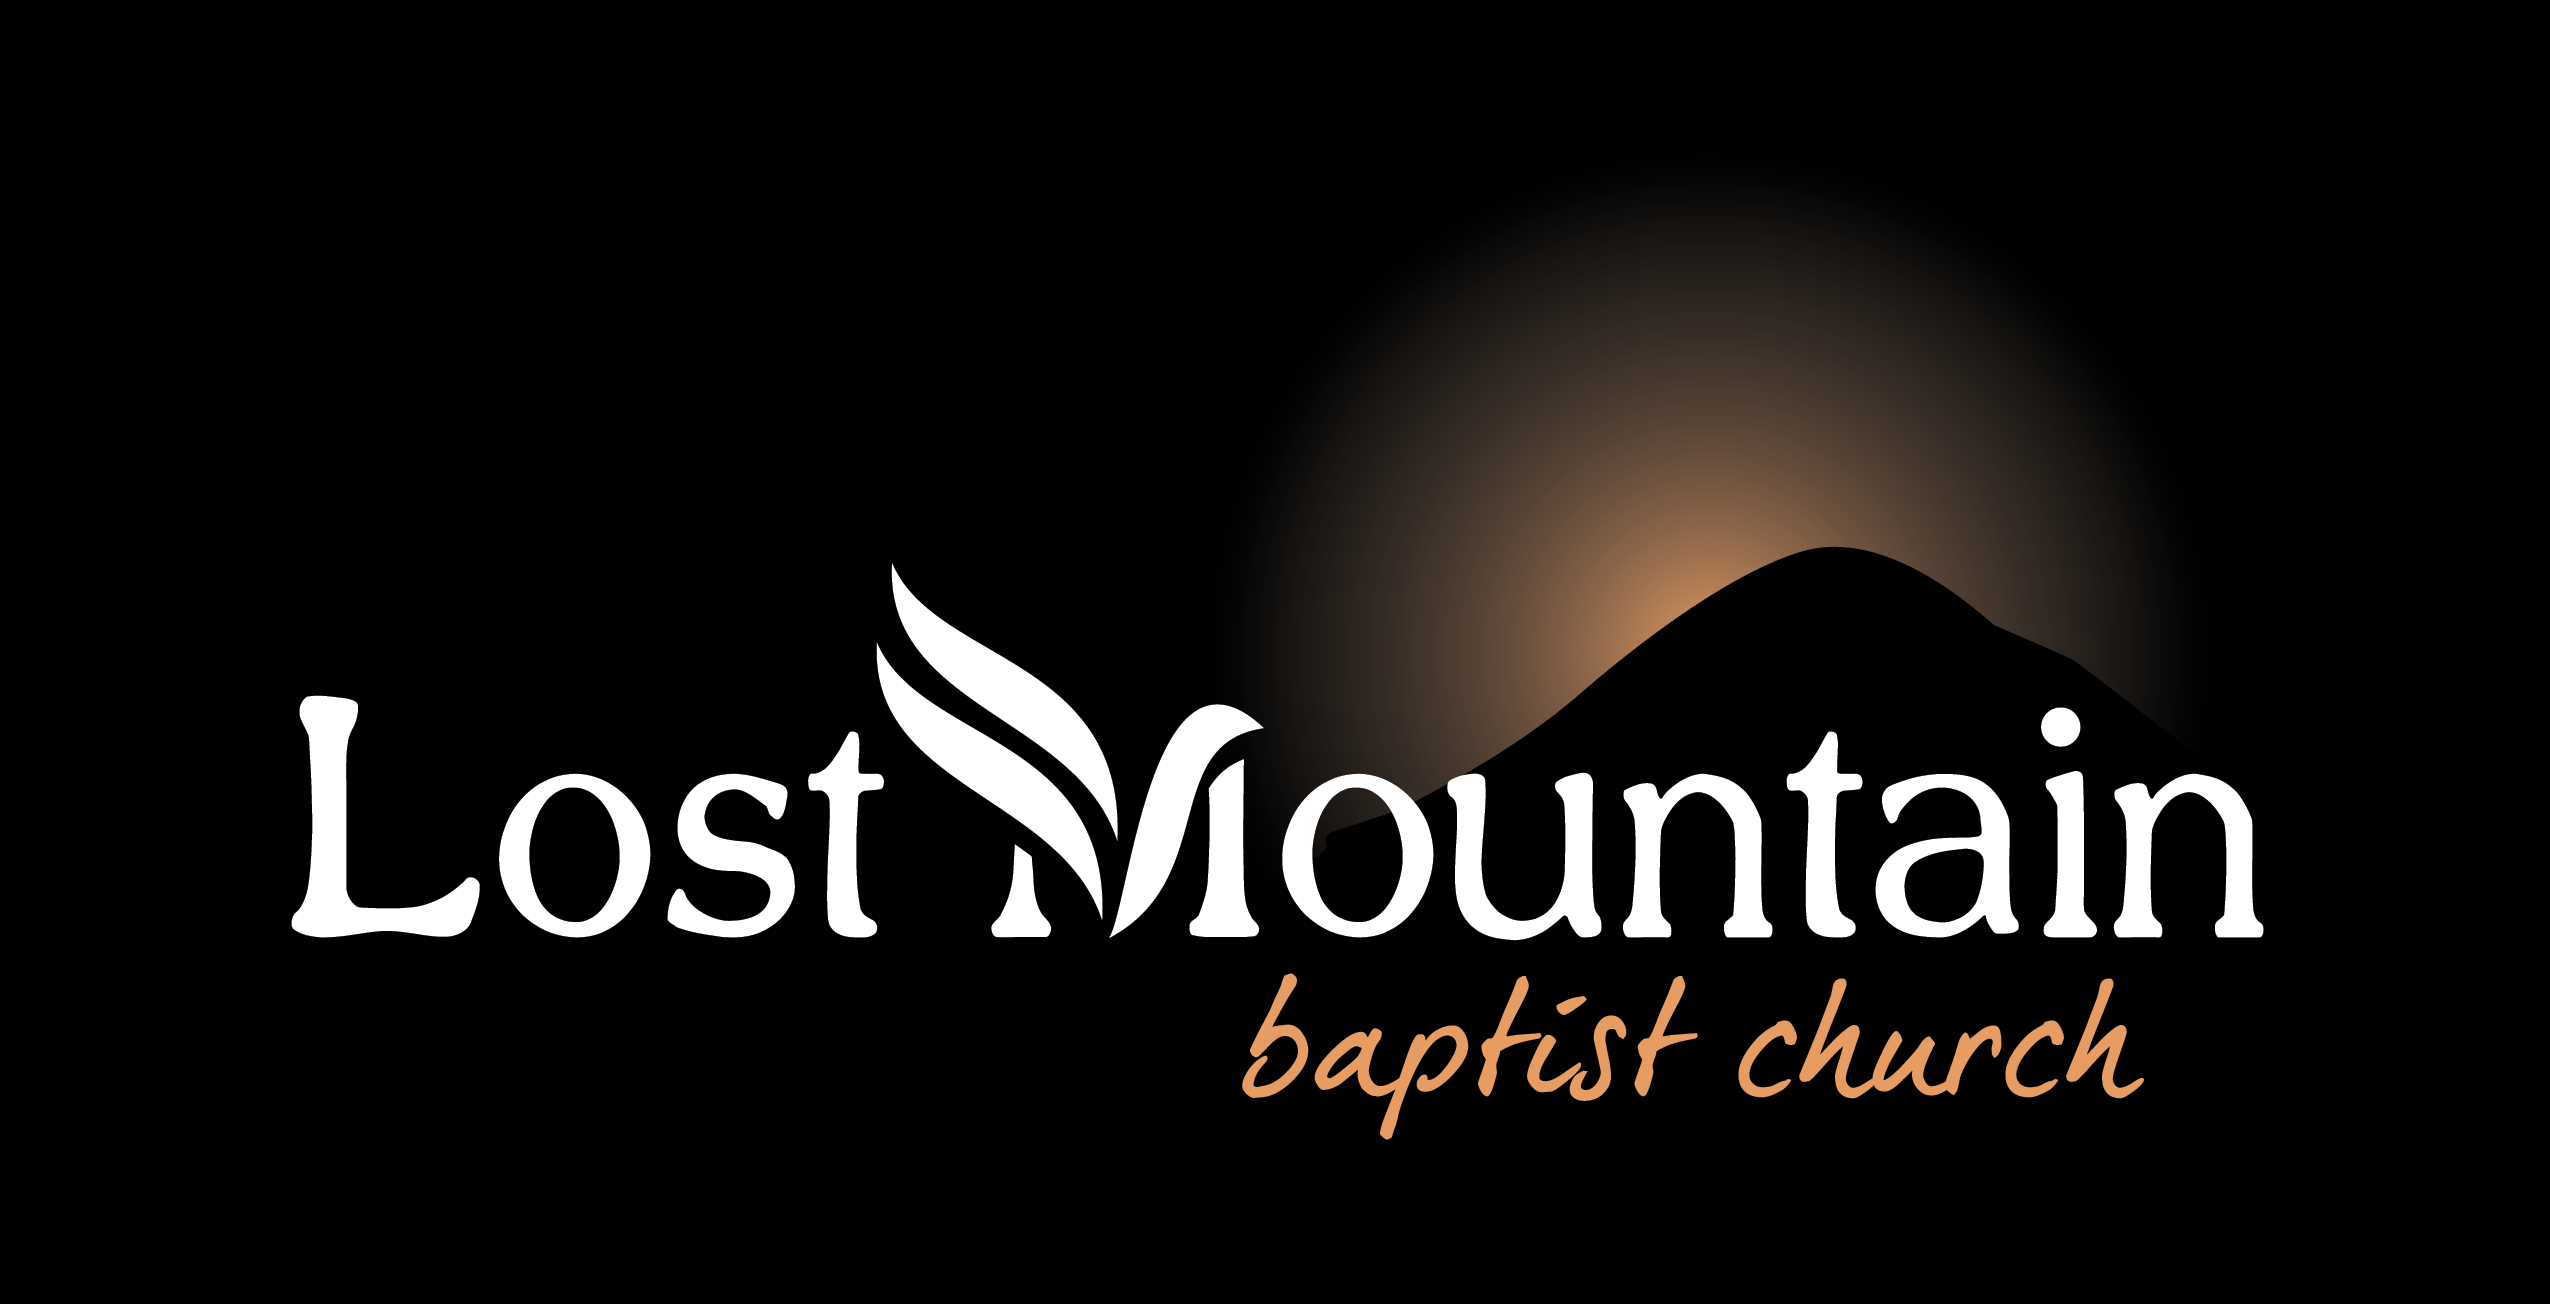 Lost Mountain Baptist Church